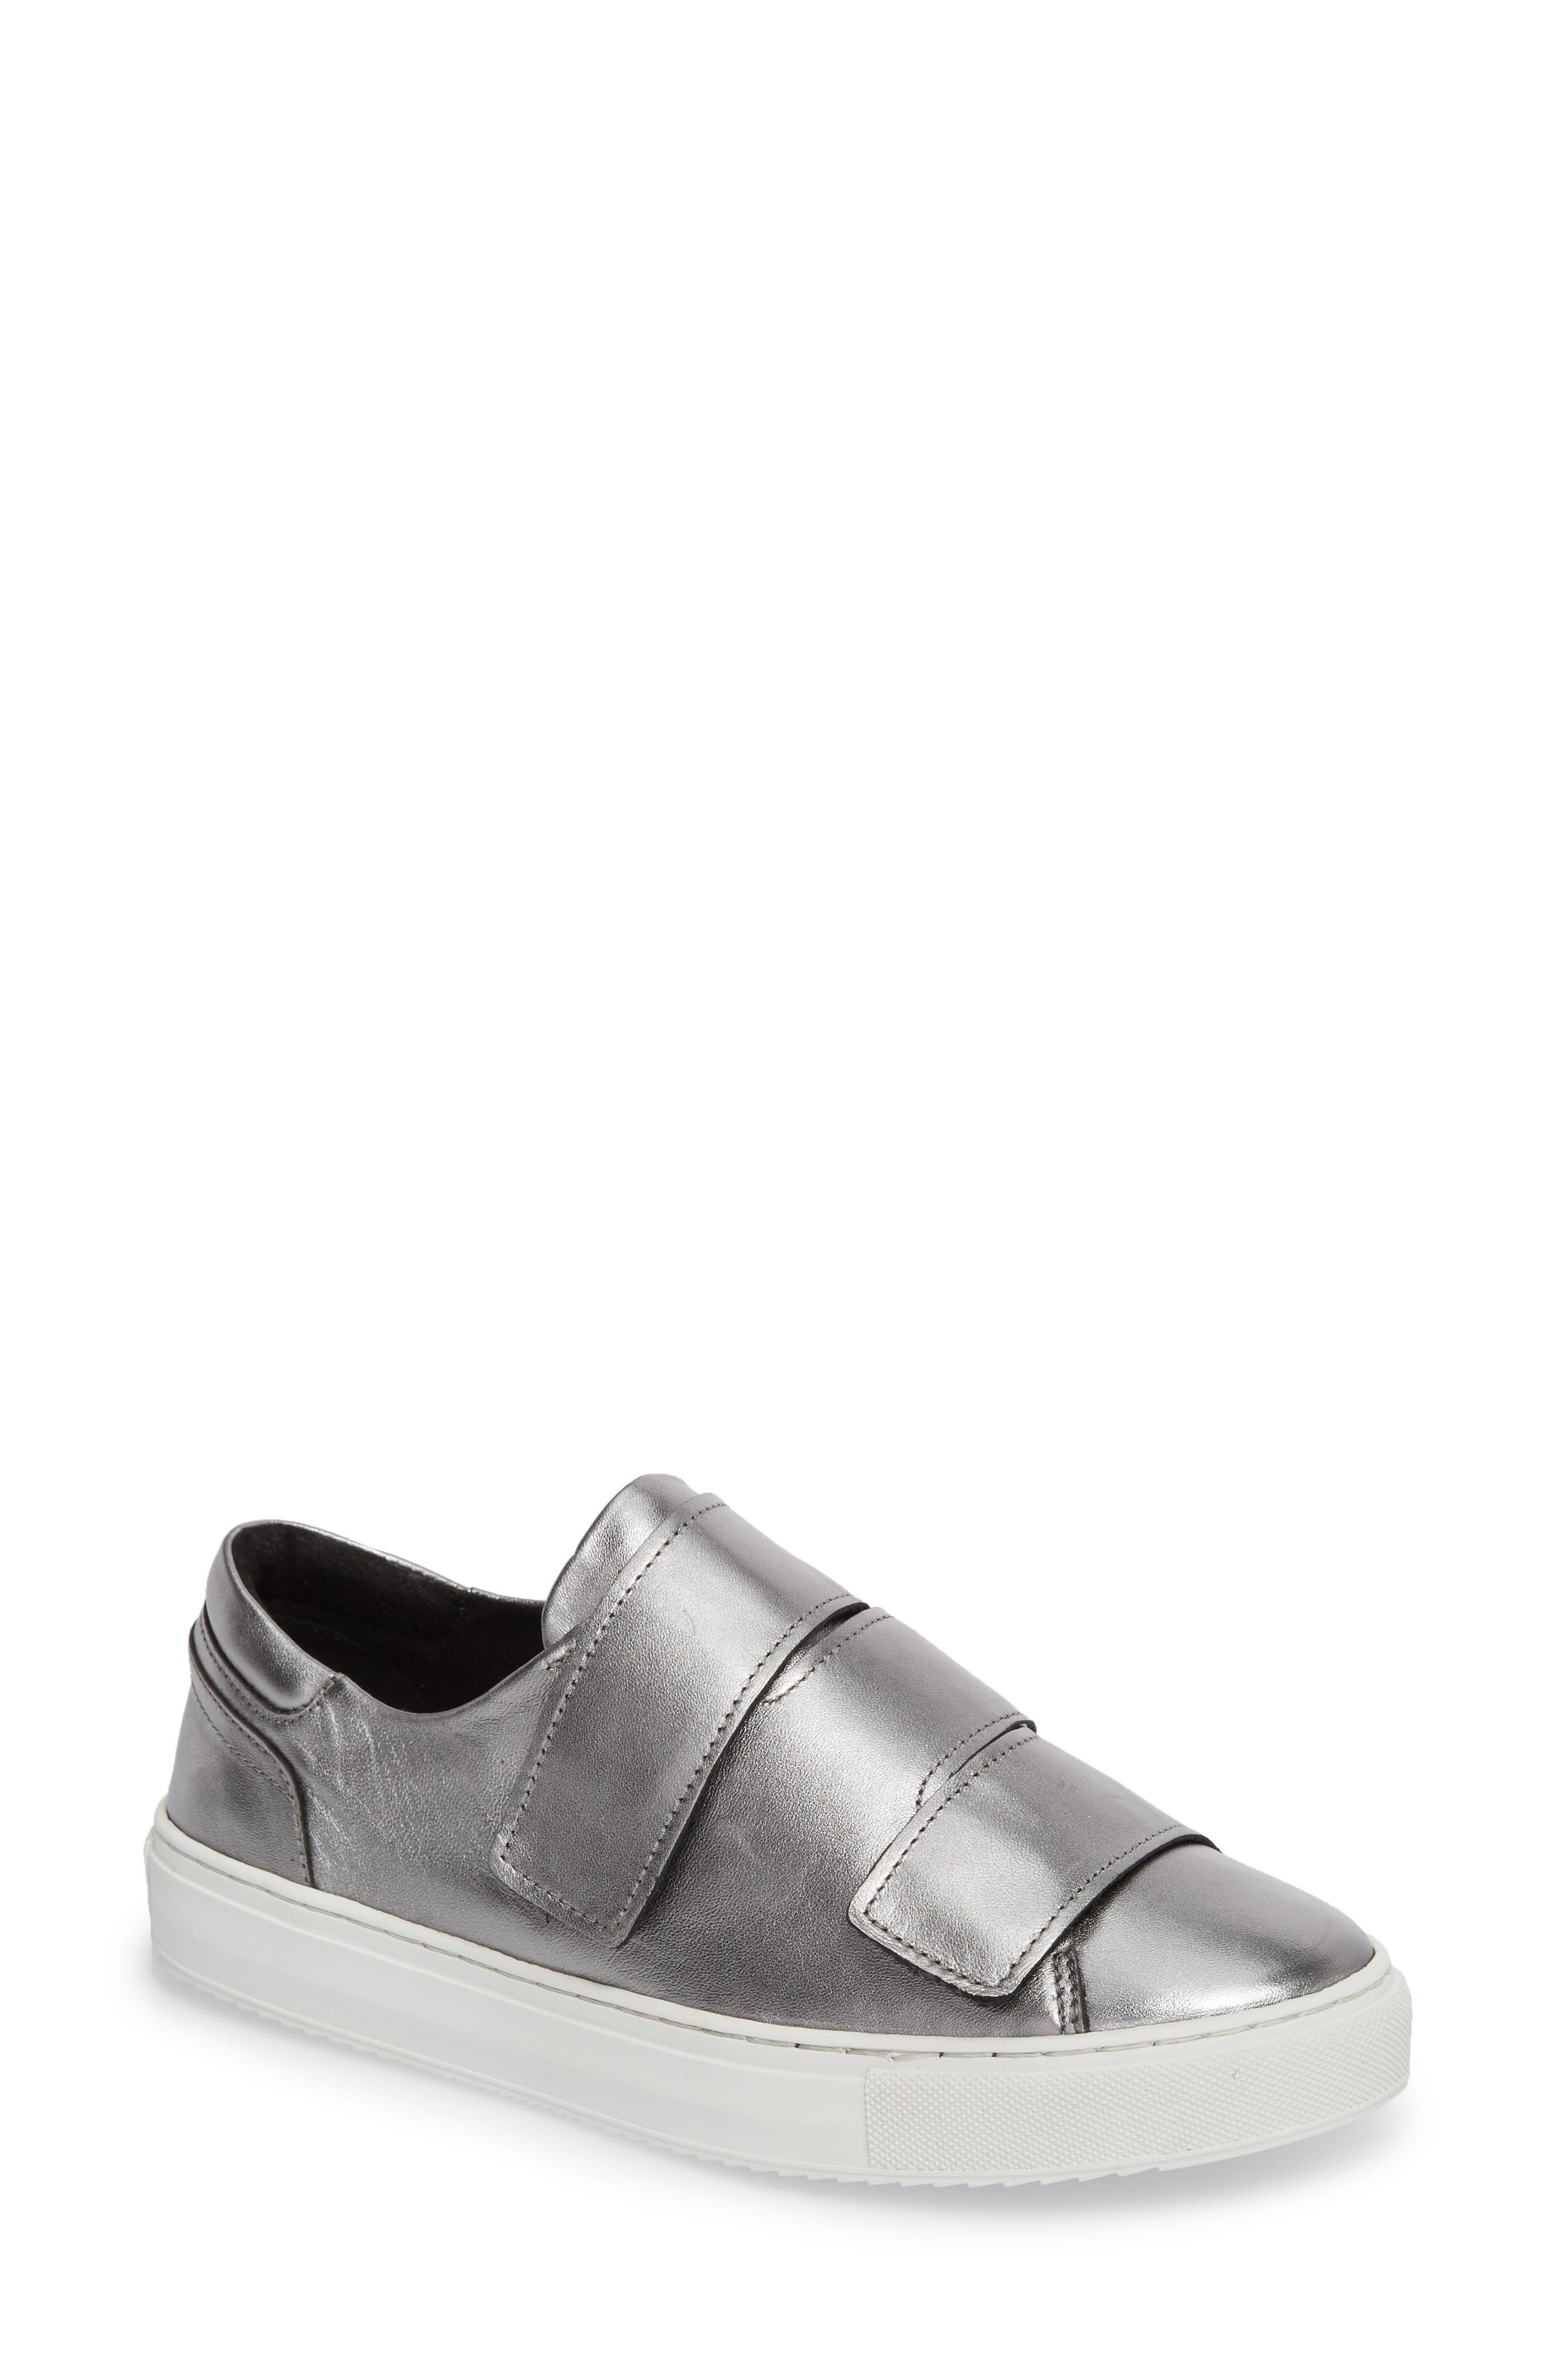 Rollover Alternating Strap Sneaker,                             Main thumbnail 1, color,                             Pewter Leather